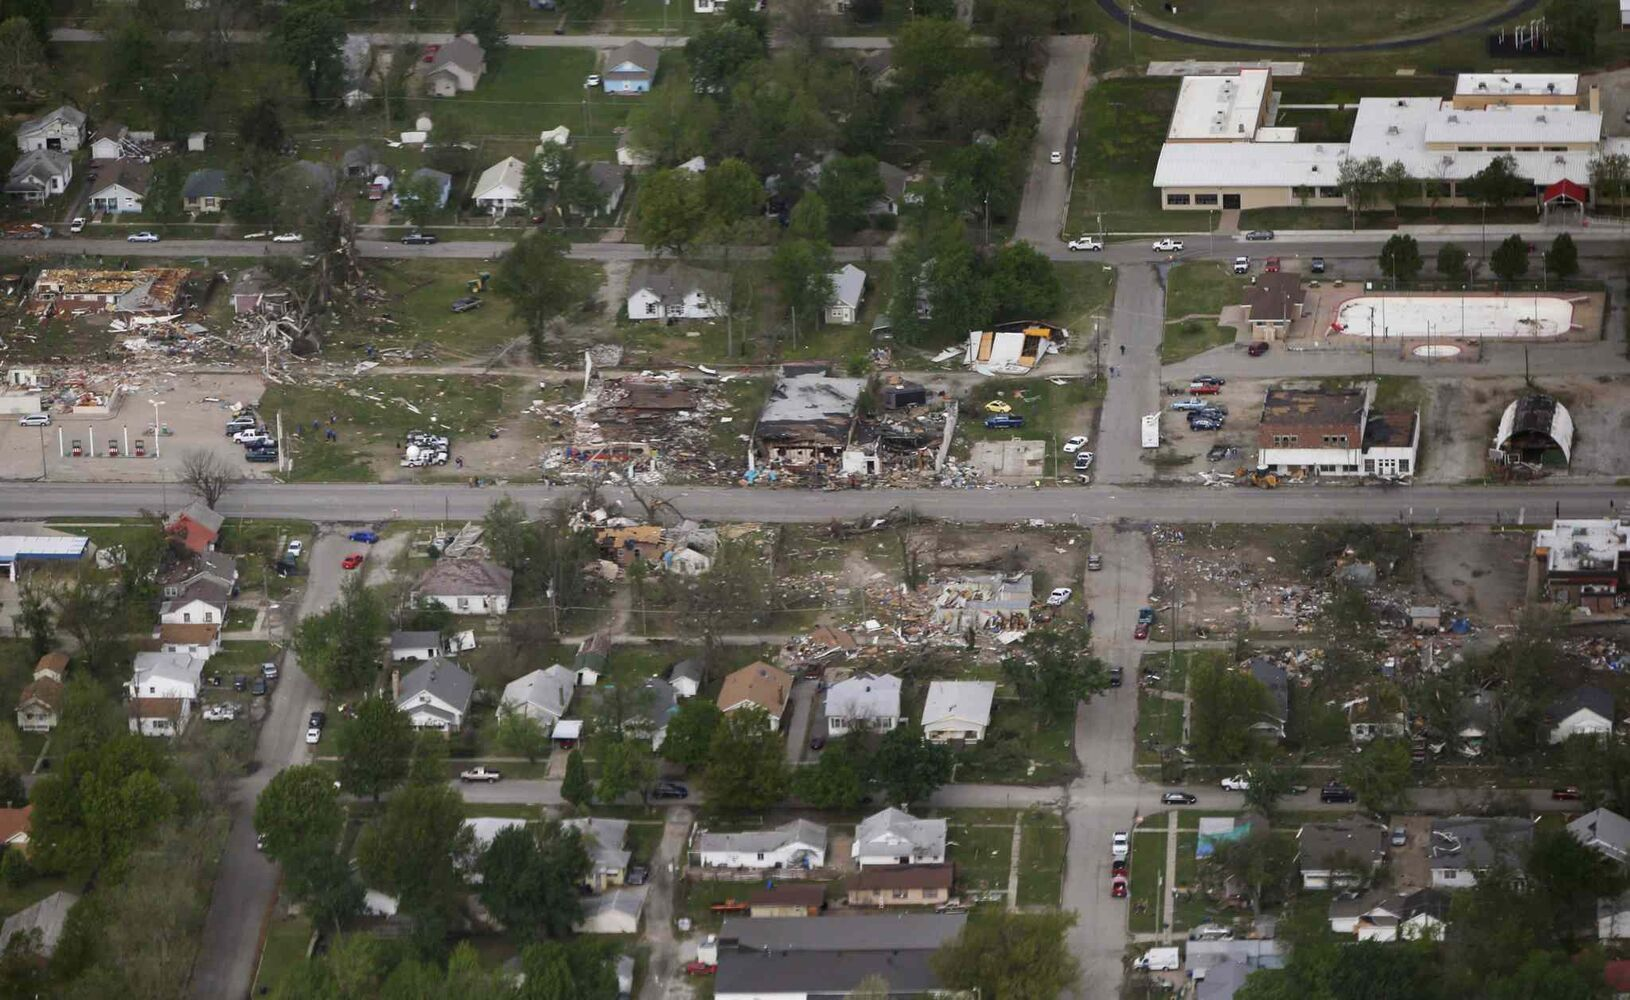 A tornado's path is seen in an aerial photo made over Baxter Springs, Kan., Monday, April 28, 2014. (Orlin Wagner / The Associated Press)